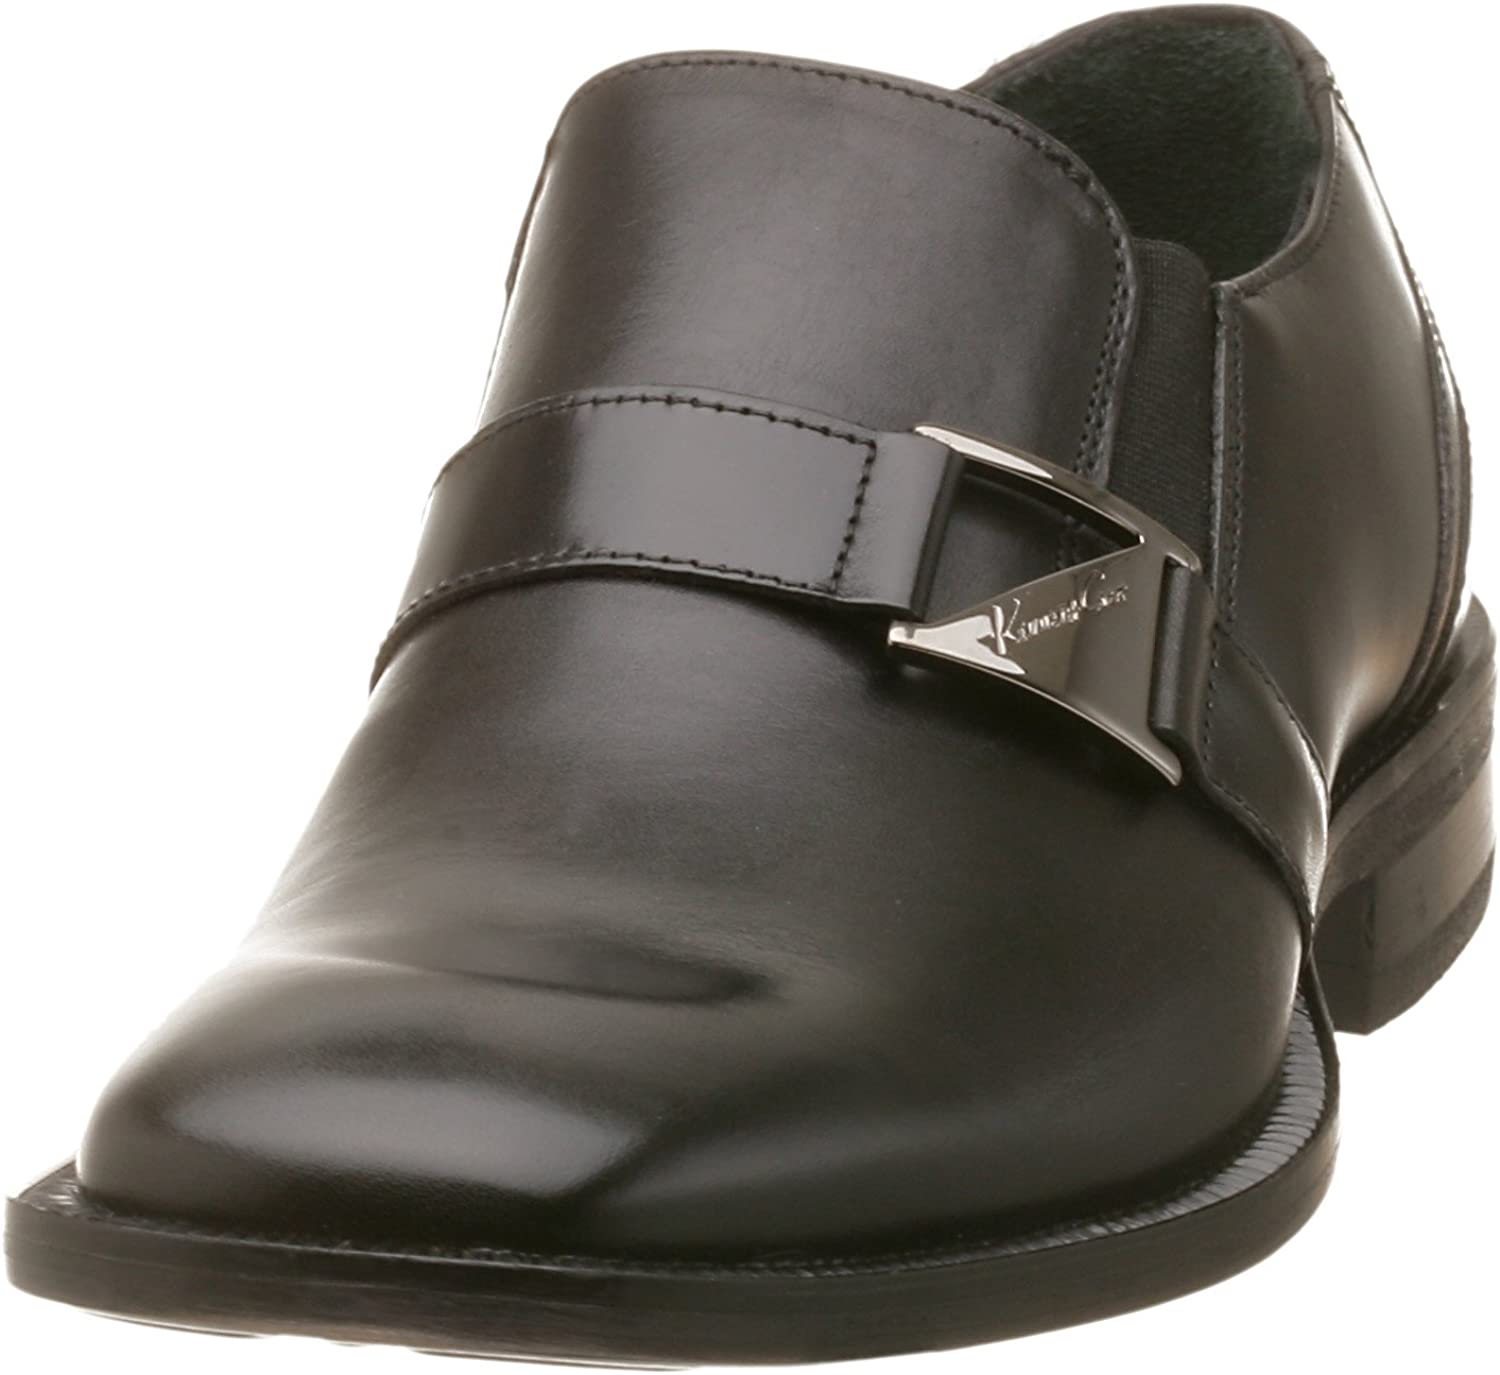 Kenneth Cole New York Men's Well to Dew Monk Strap Loafer